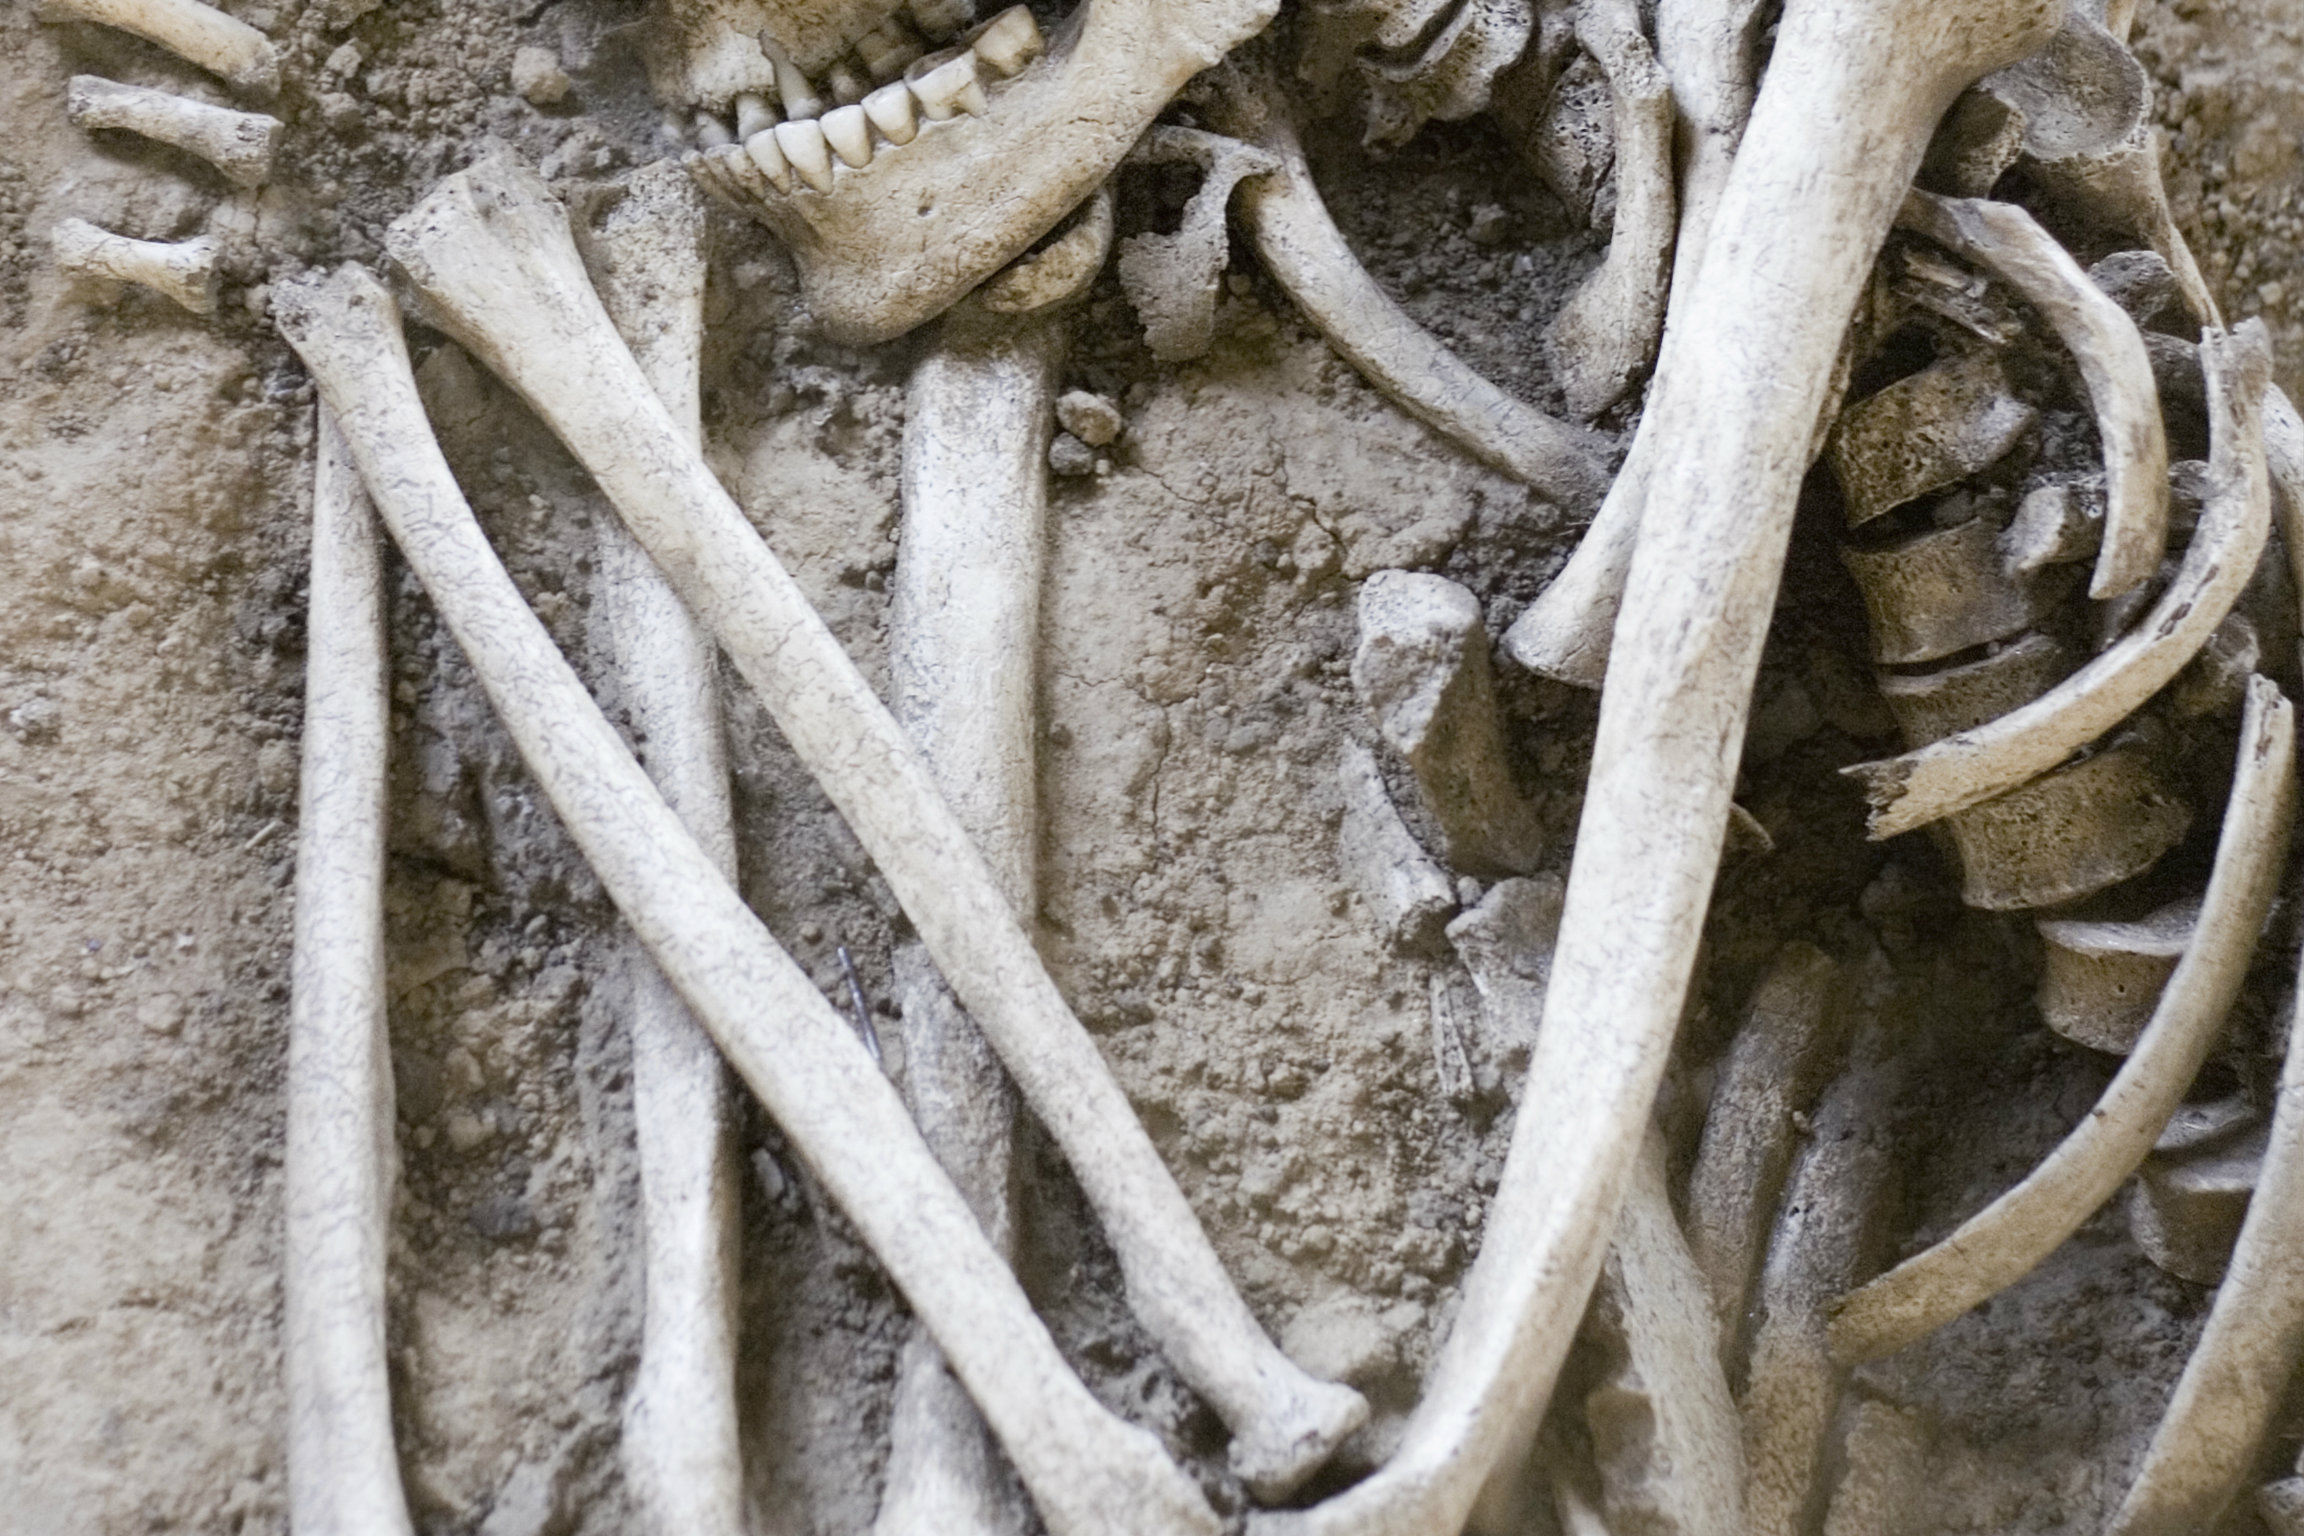 Giant 7-Foot to 8-Foot Skeletons Uncovered in Ecuador Sent for Scientific Testing